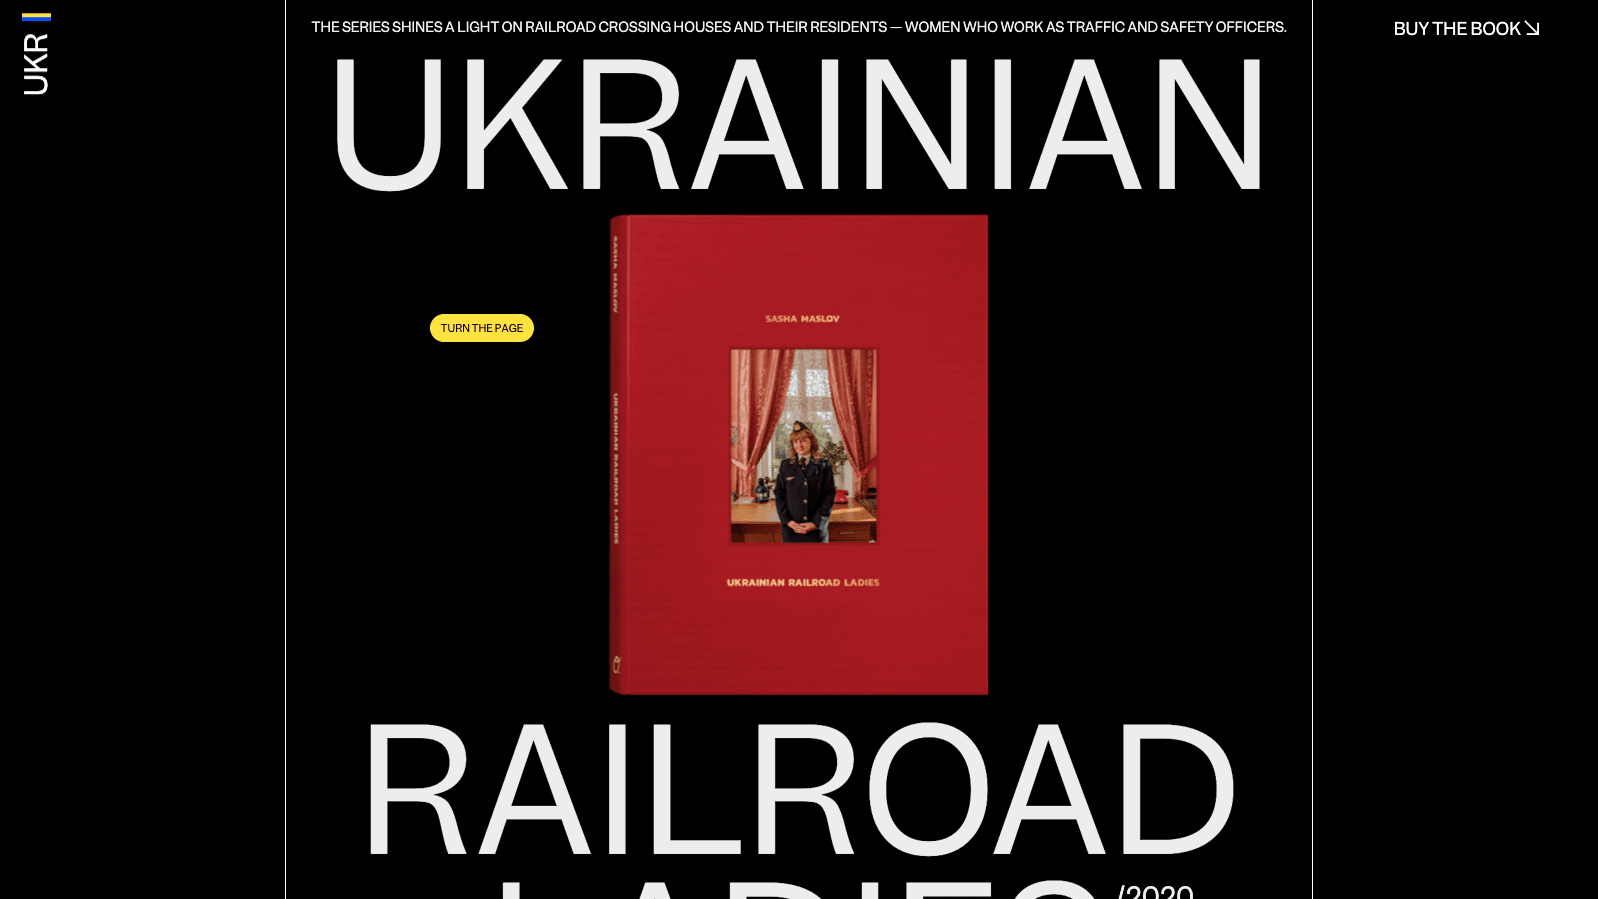 Ukrainian Railroad Ladies